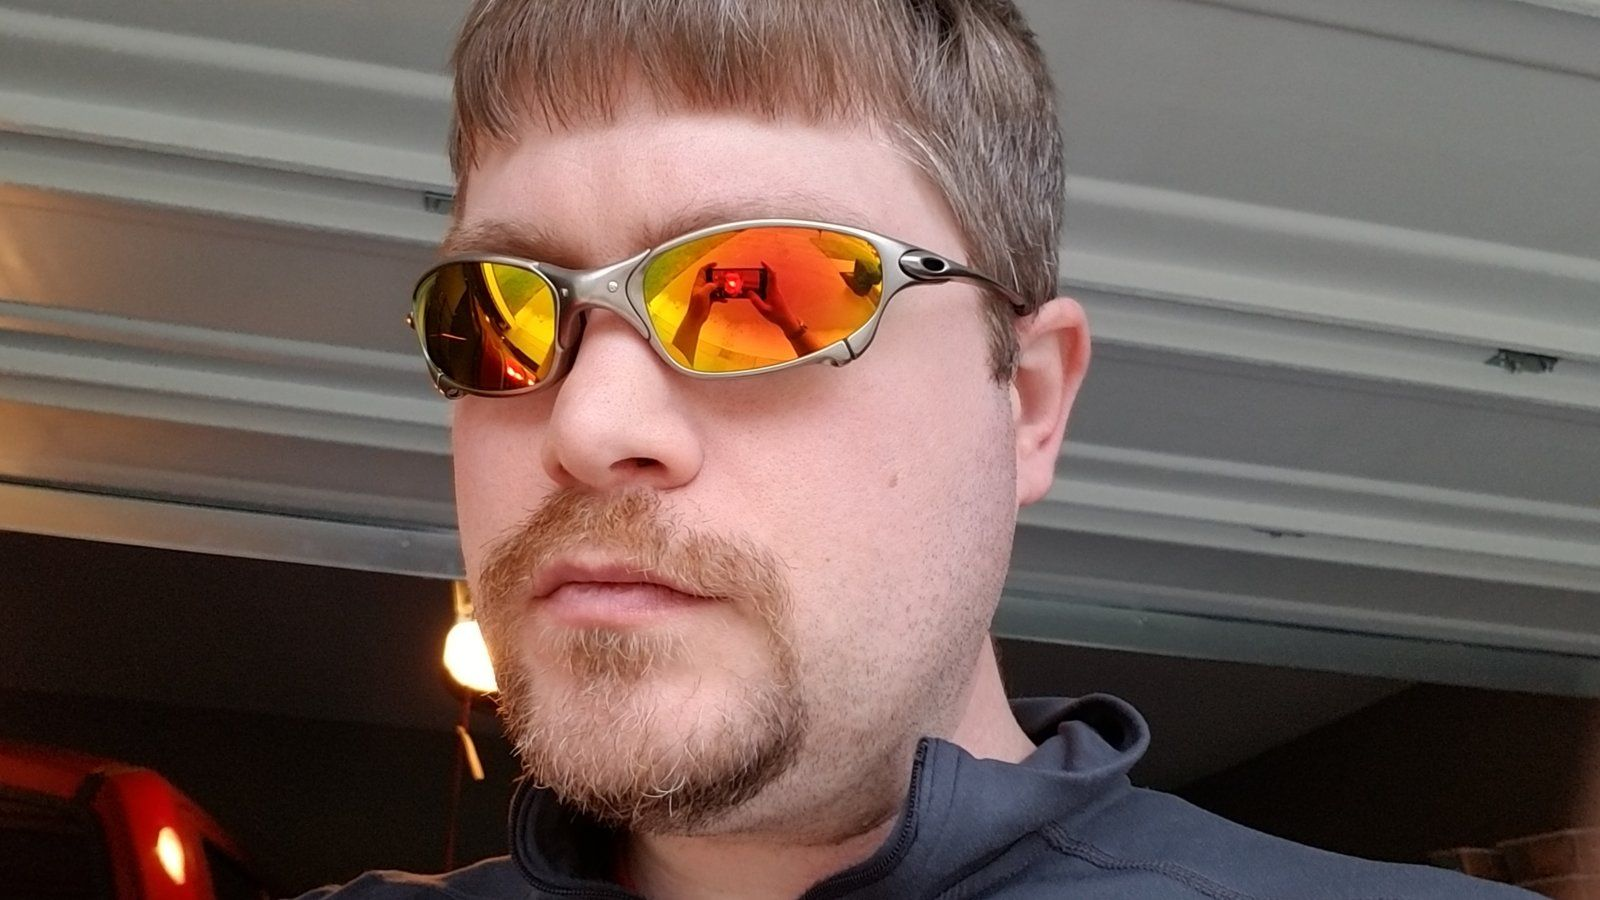 What Oakleys Are You Wearing Today?? - 20190112_165154.jpg